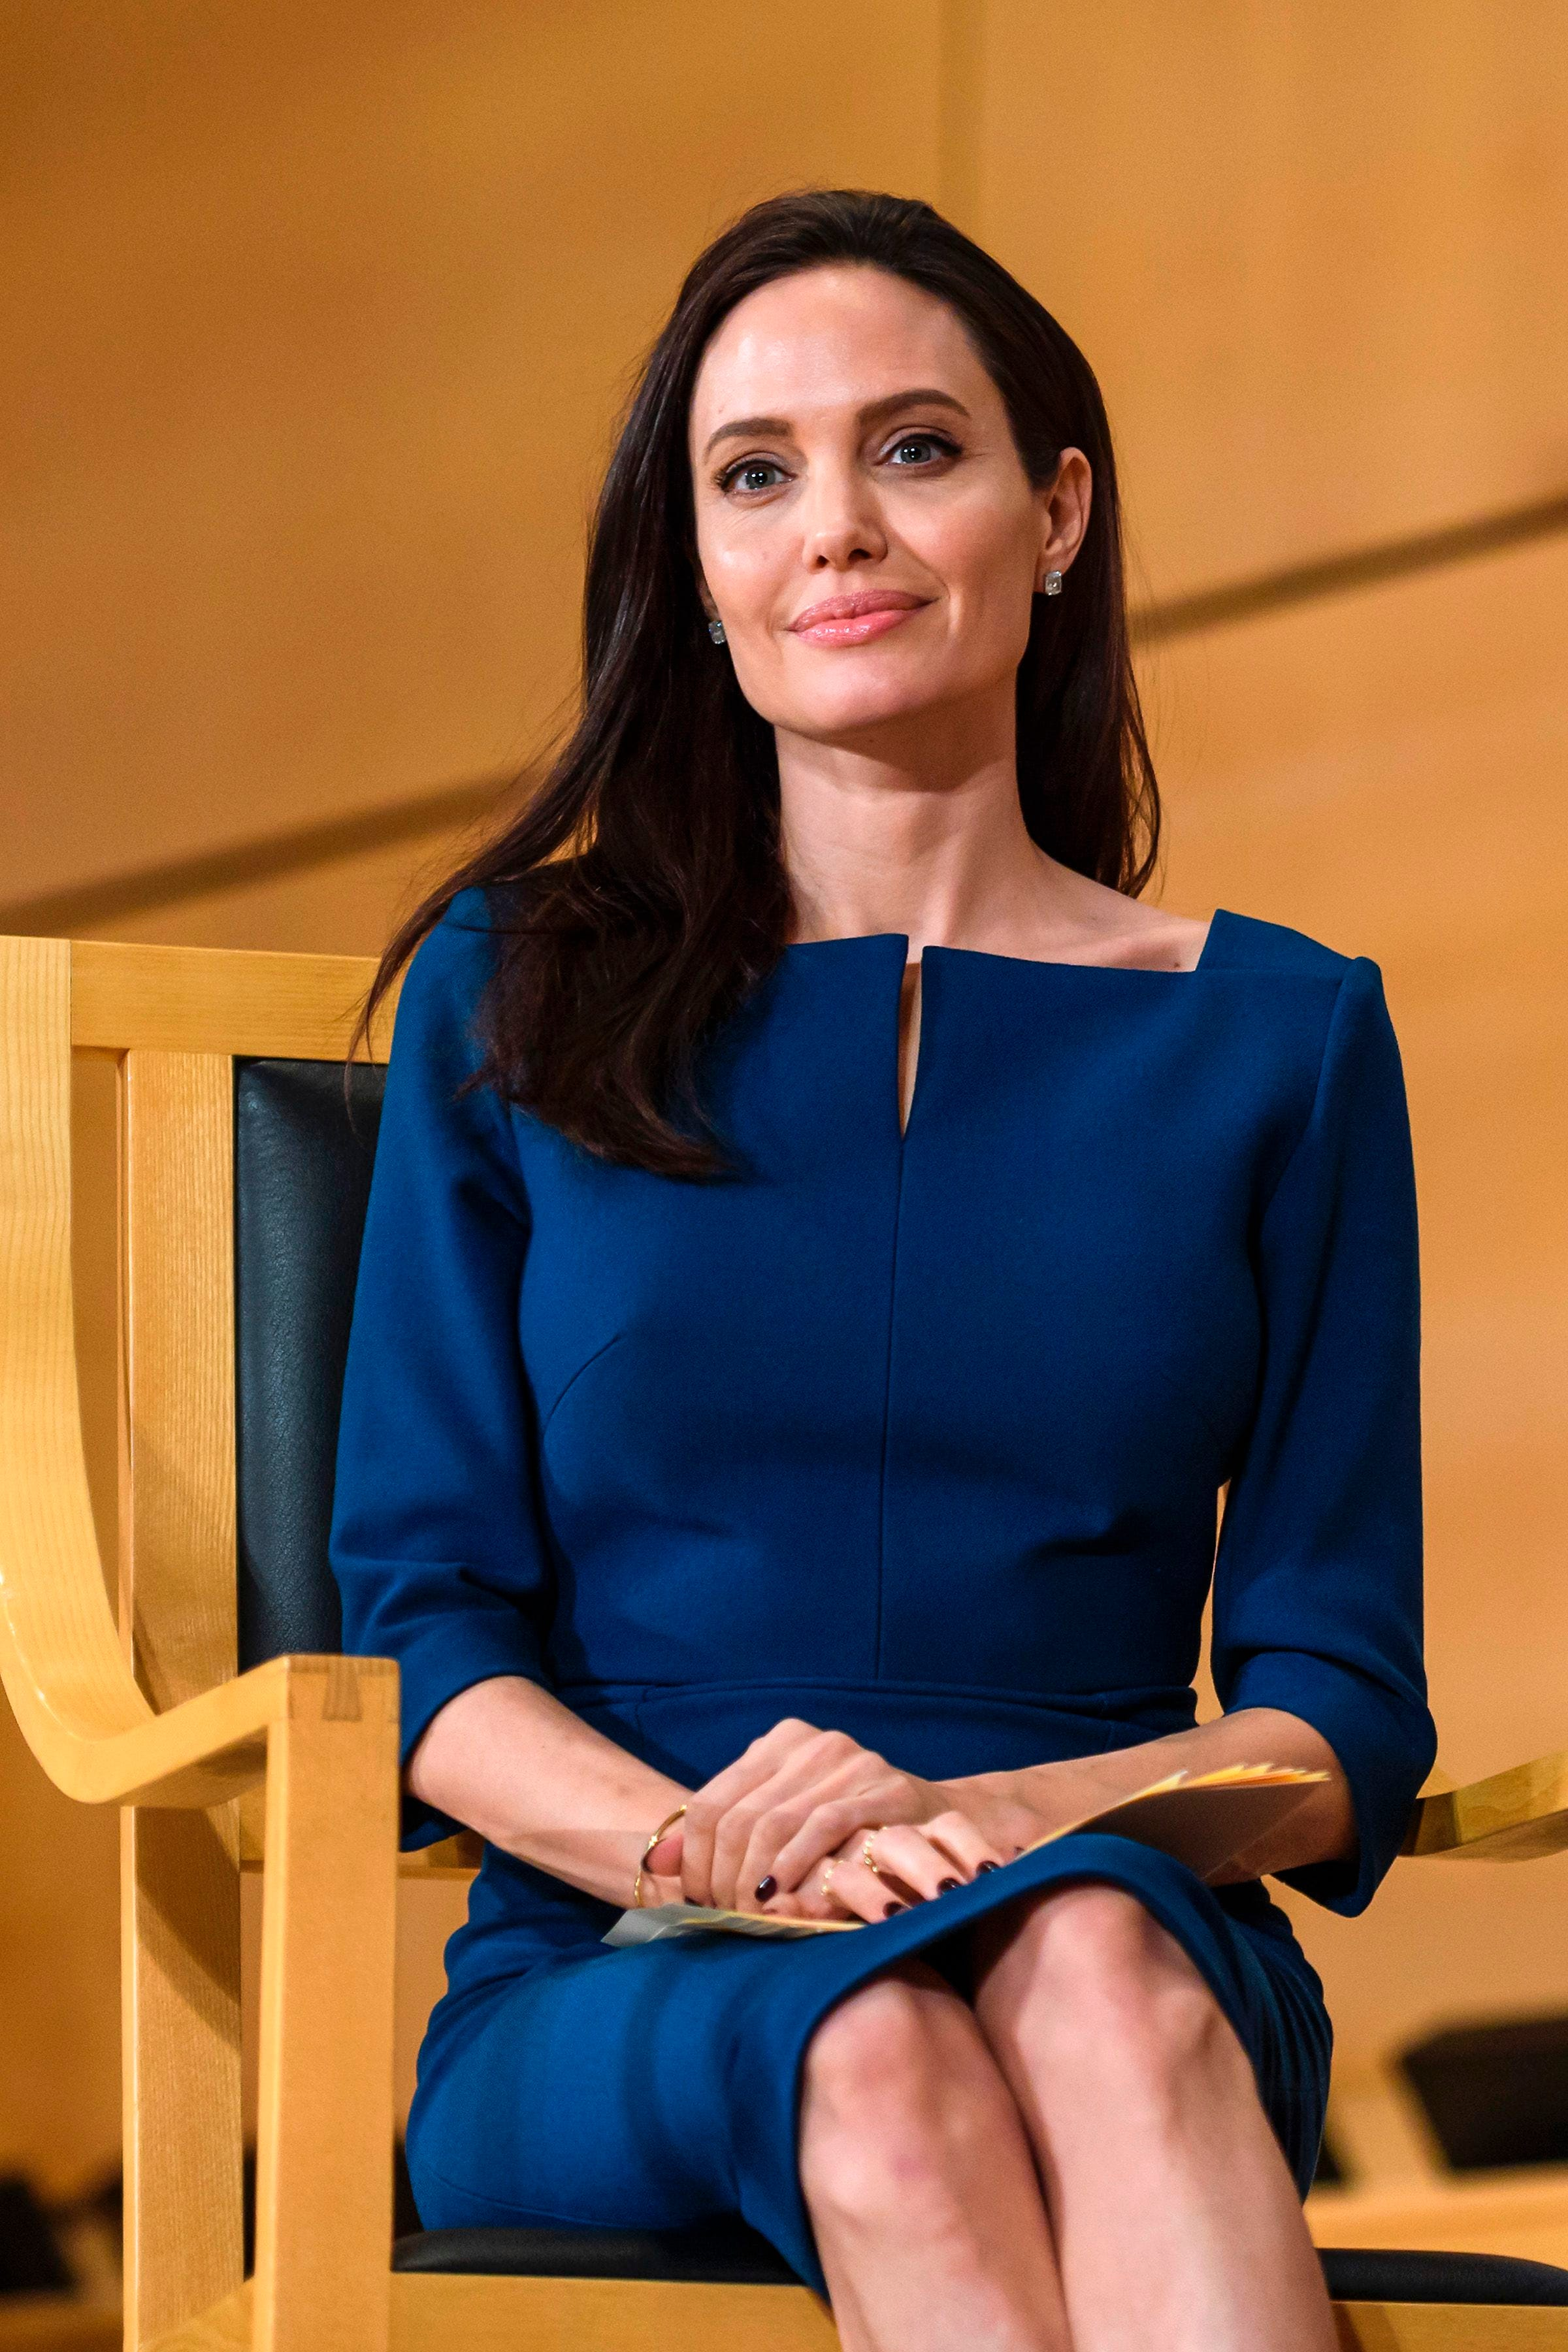 Angelina Jolie Bravely Reveals She Had A DoubleMastectomy